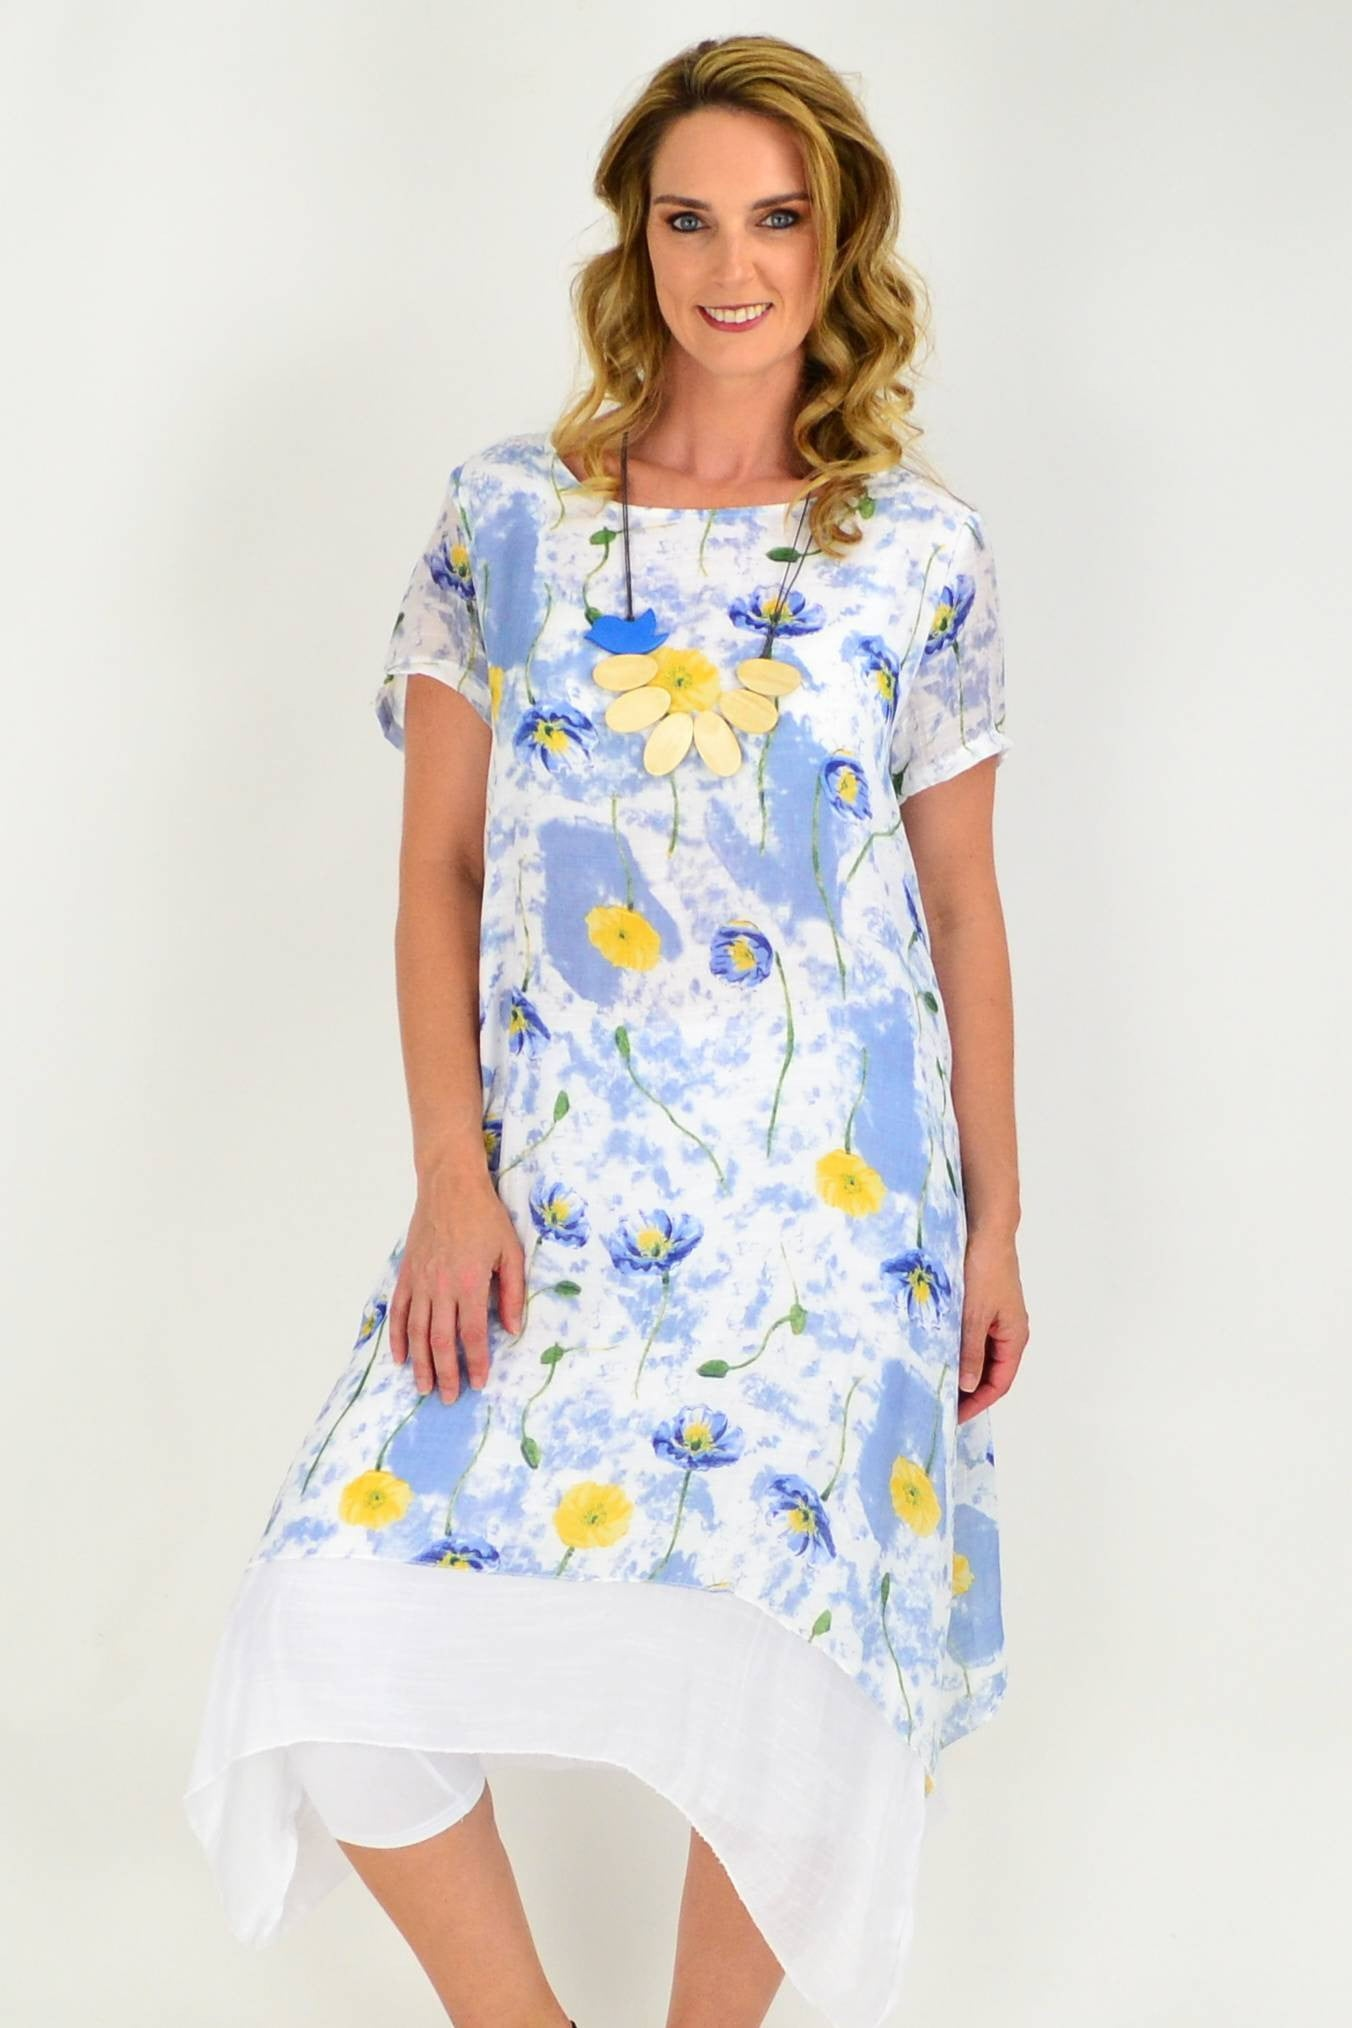 Soft Blue Floral Print Cotton Short Sleeve Tunic Dress | I Love Tunics | Tunic Tops | Tunic | Tunic Dresses  | womens clothing online